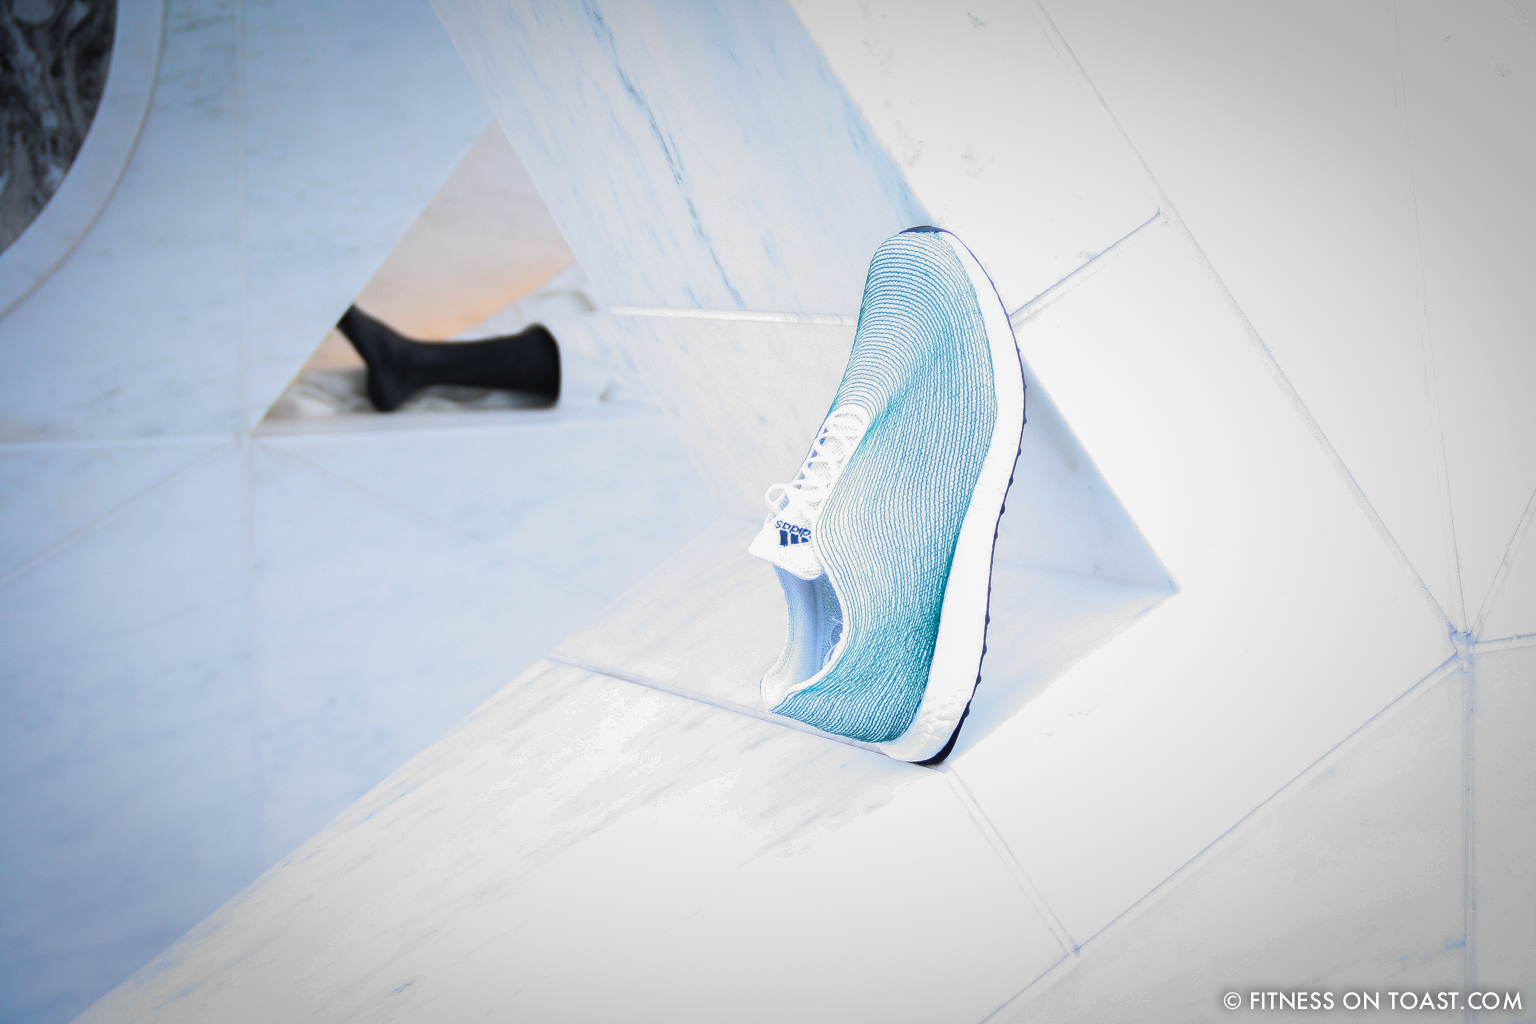 Fitness On Toast Faya Blog Healthy Girl Workout Exercise Adidas New York Parley for the Oceans UN Building Launch Shoe Recycled Ocean Plastic-2